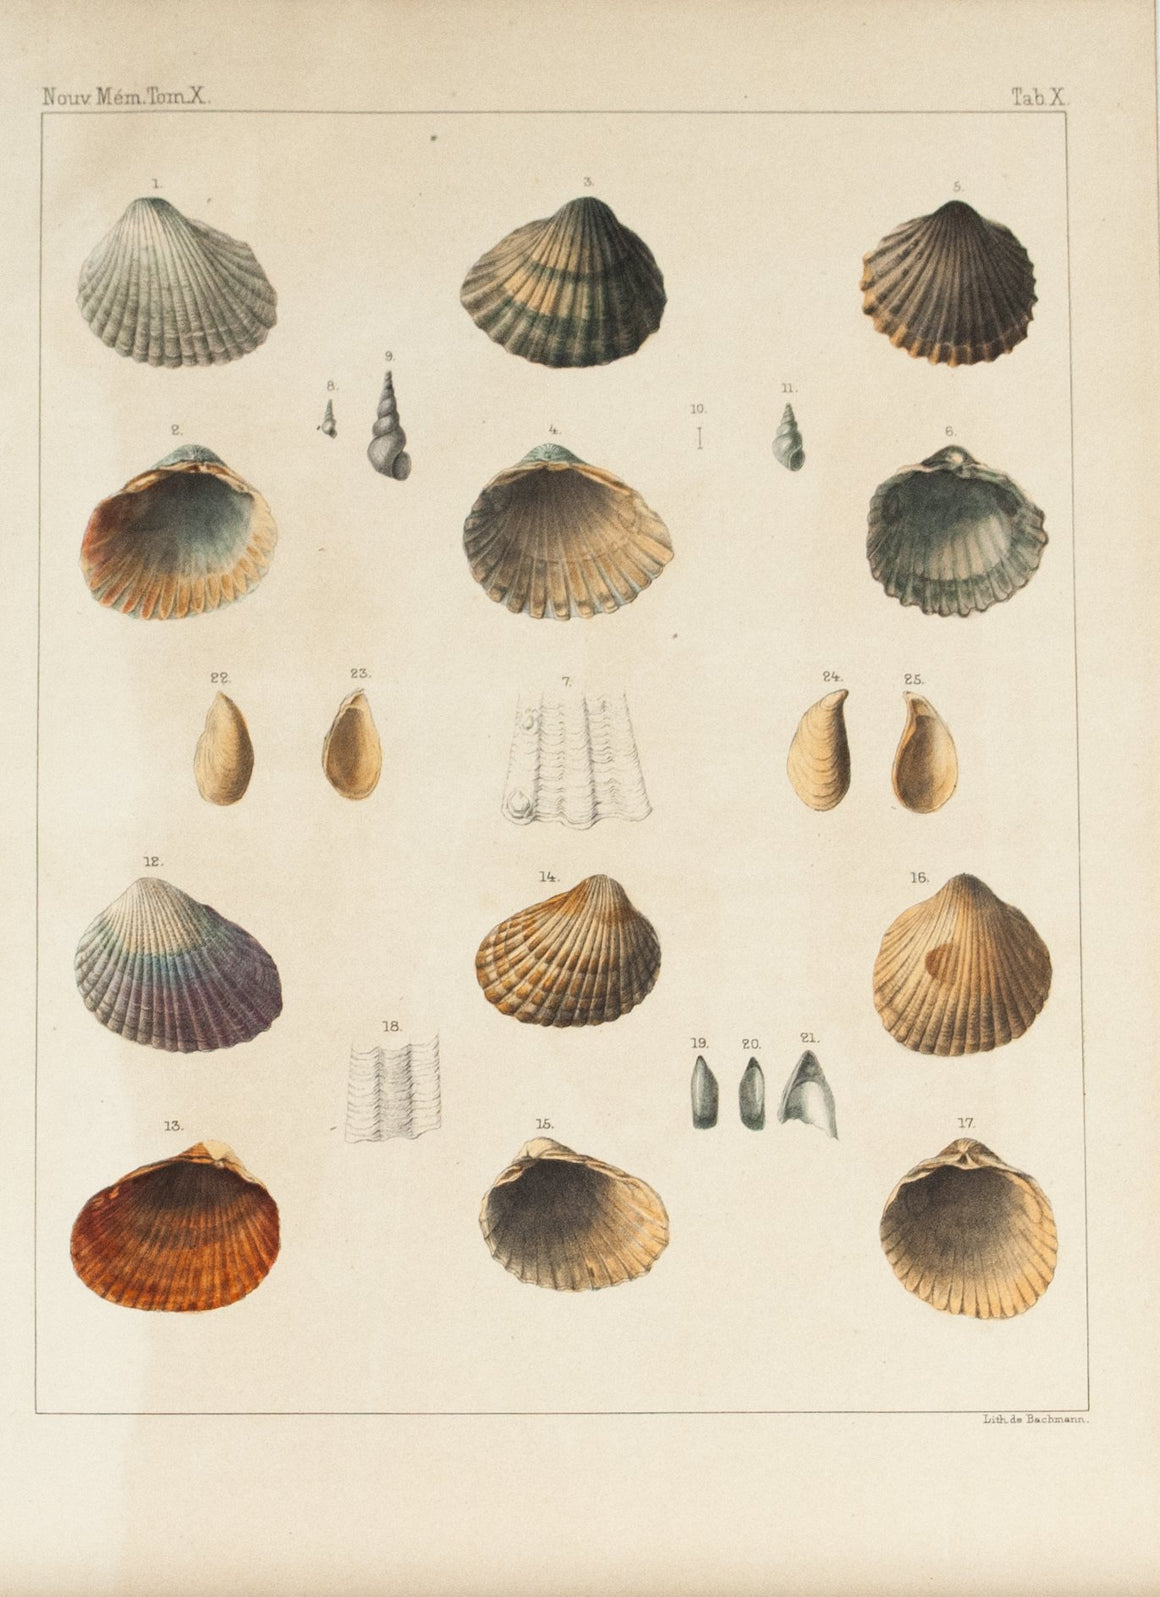 1855 Tab X - Sea Shells